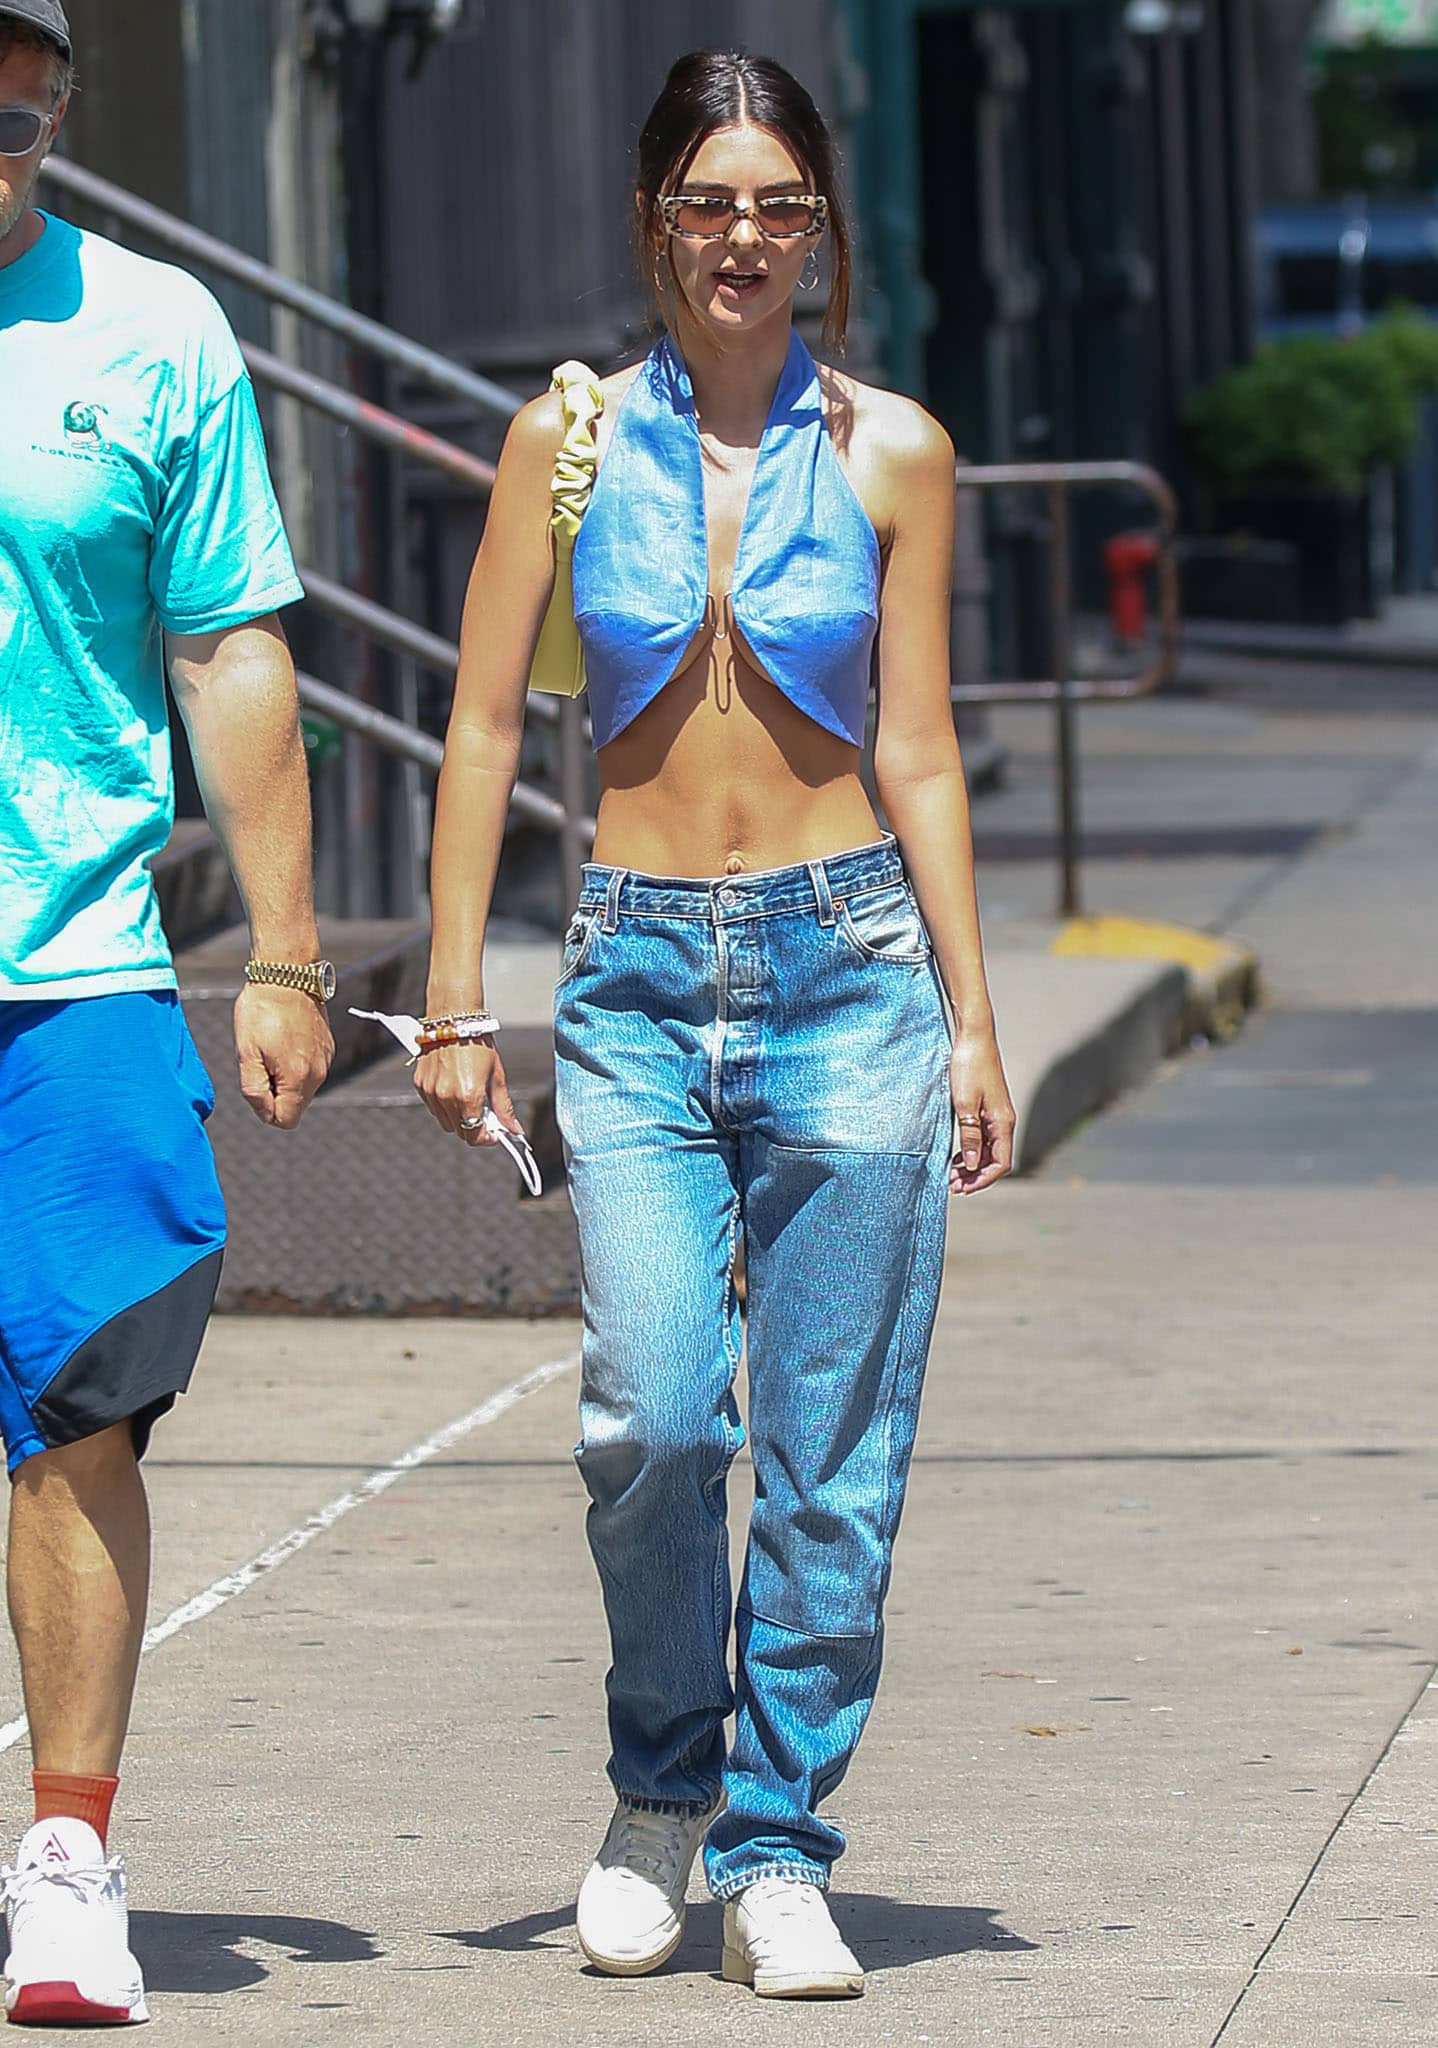 Emily Ratajkowski flashes abs and underboob in blue halterneck crop top and low-rise jeans